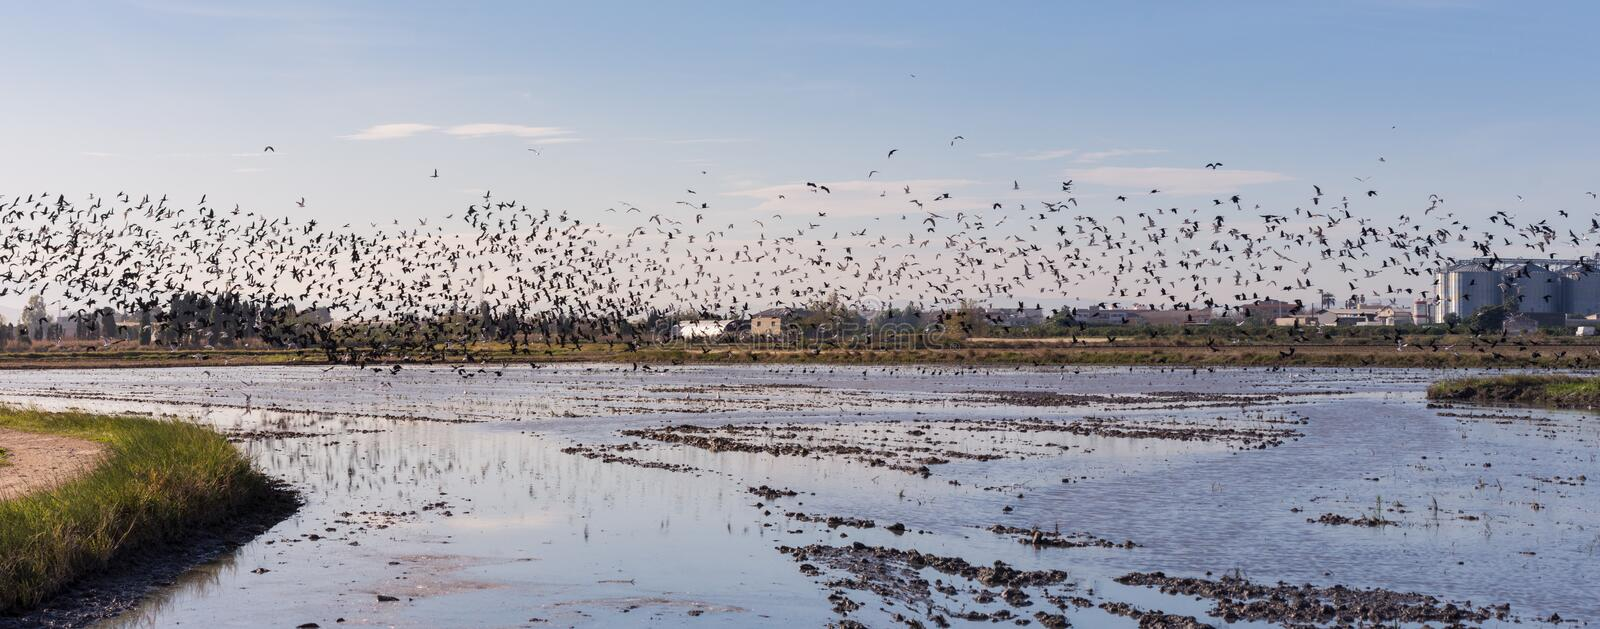 Panoramic view of a flock of birds in the natural park of Albufera at sunrise, Valencia, Spain stock photo